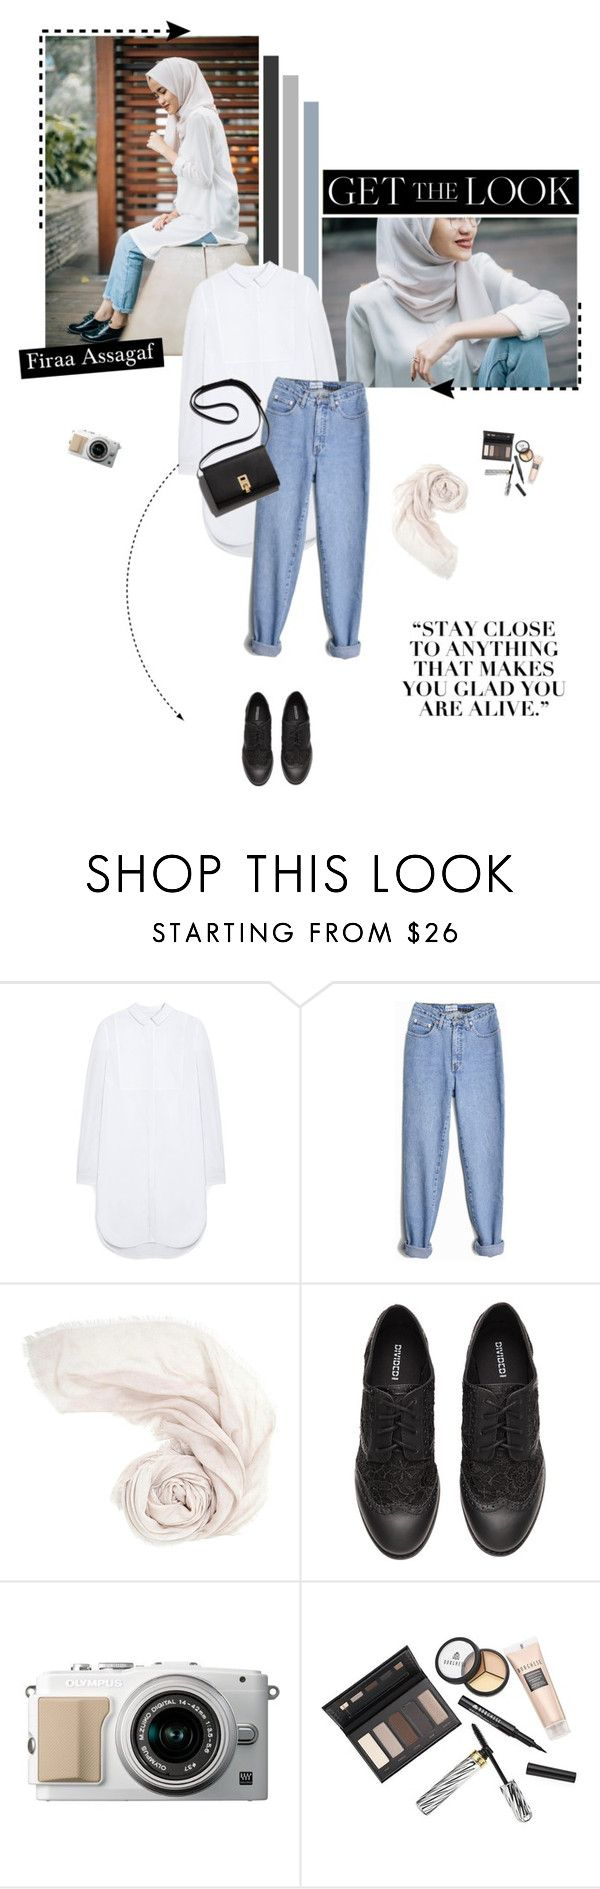 """""""Get the Look : Firaa Assagaf"""" by aisyh93 ❤ liked on Polyvore featuring Mulberry, H&M, Borghese and GetTheLook"""